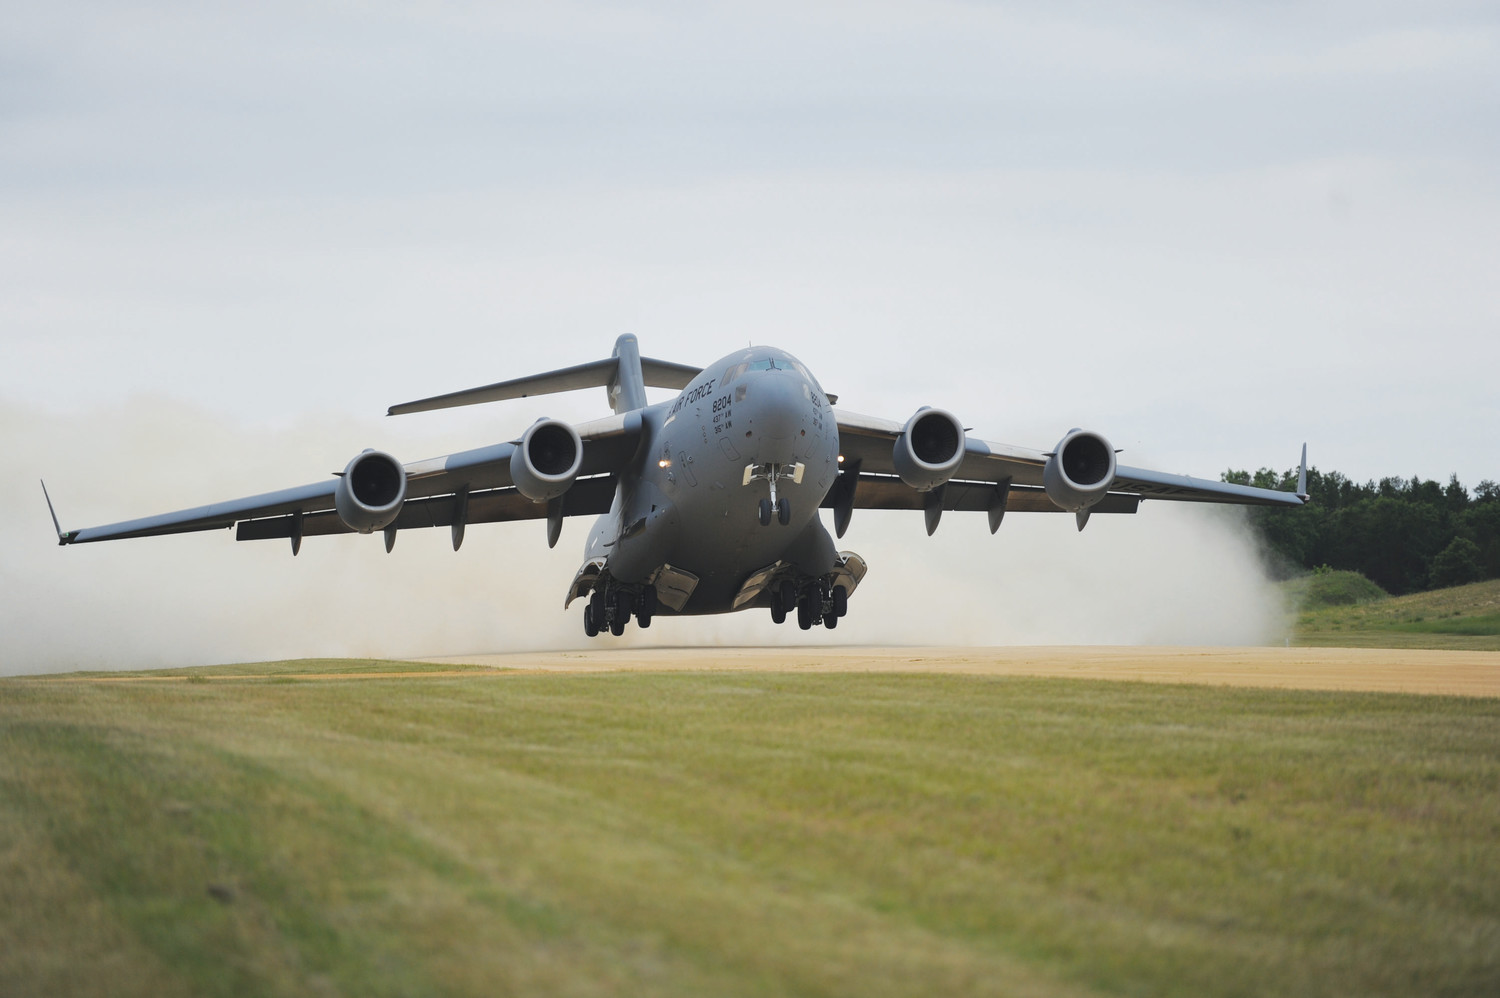 A C-17 Globemaster from the 437th Airlift Wing out of Joint Base Charleston takes off from the gravel runway at the Young Air Assault Strip in Fort McCoy, Wisconsin, in 2016.  Capt. Kayla Hill is a C-17 pilot.